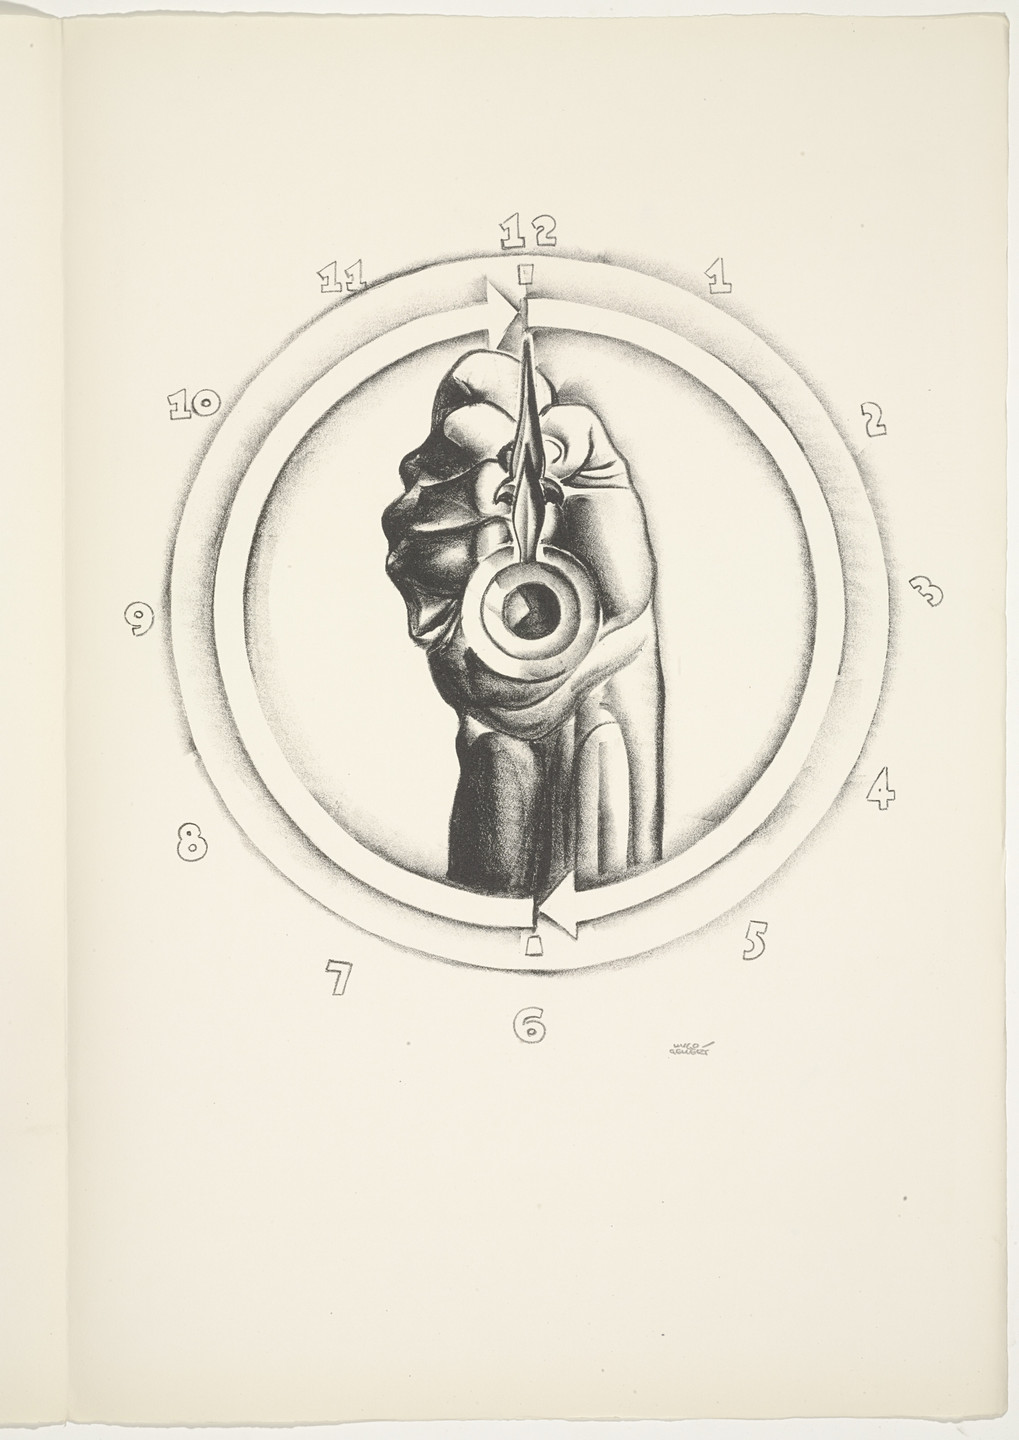 Hugo Gellert. Plate (folio 72) from 'Capital' in Pictures. 1933